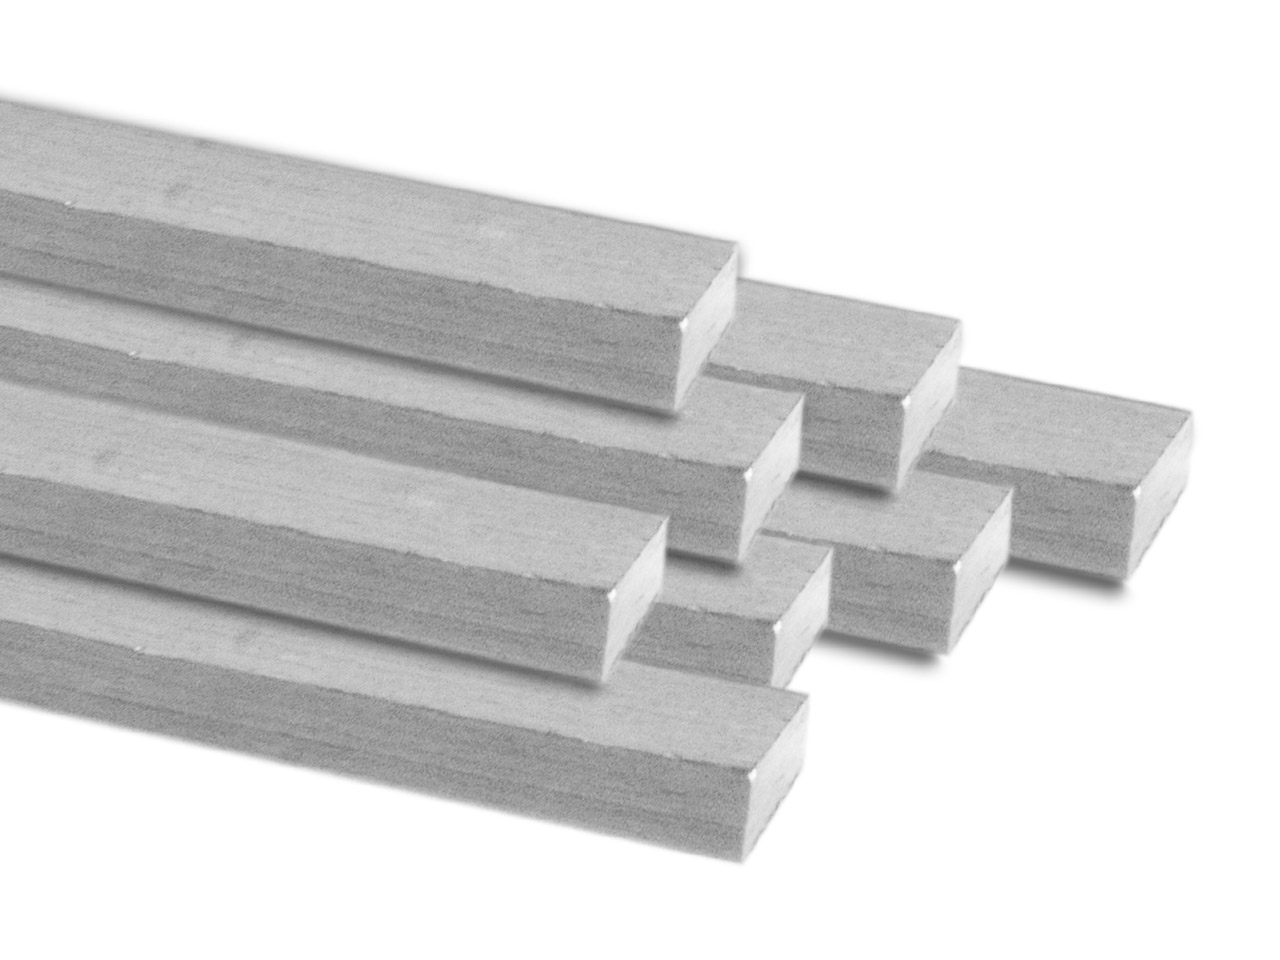 Fil rectangle 2,00  x 1,00 mm, Argent fin recuit